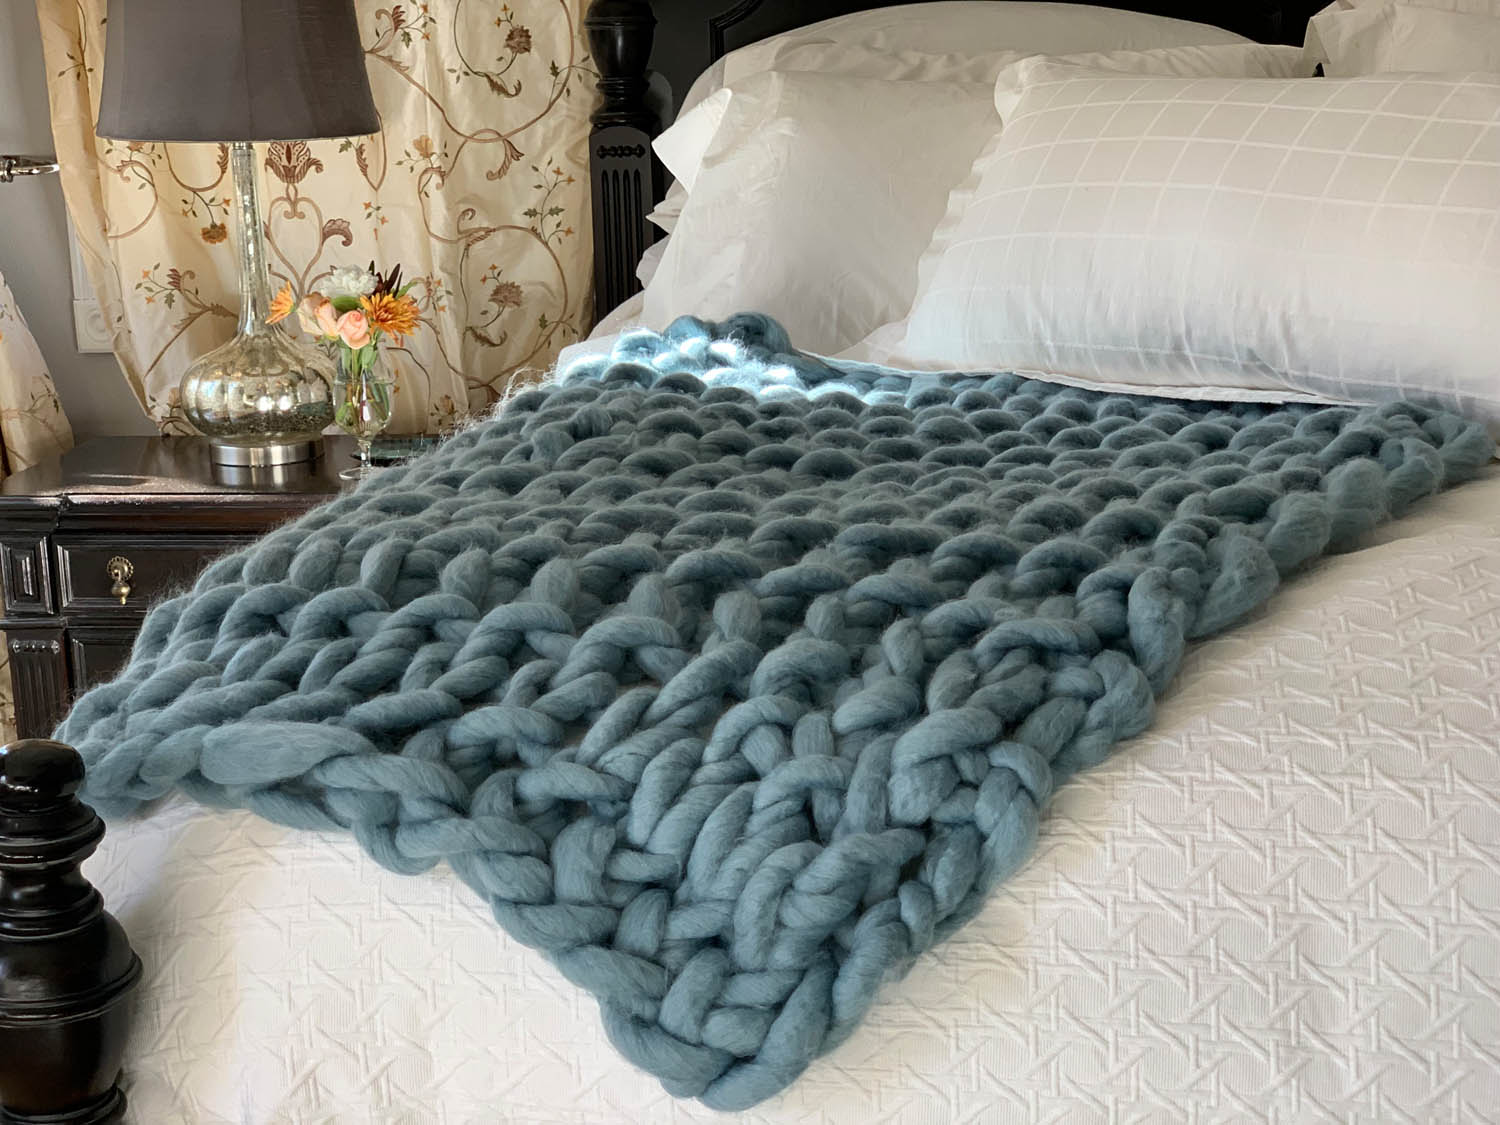 Finished 1 Hour Easy Arm-Knitted Throw in dusty blue on a white bed